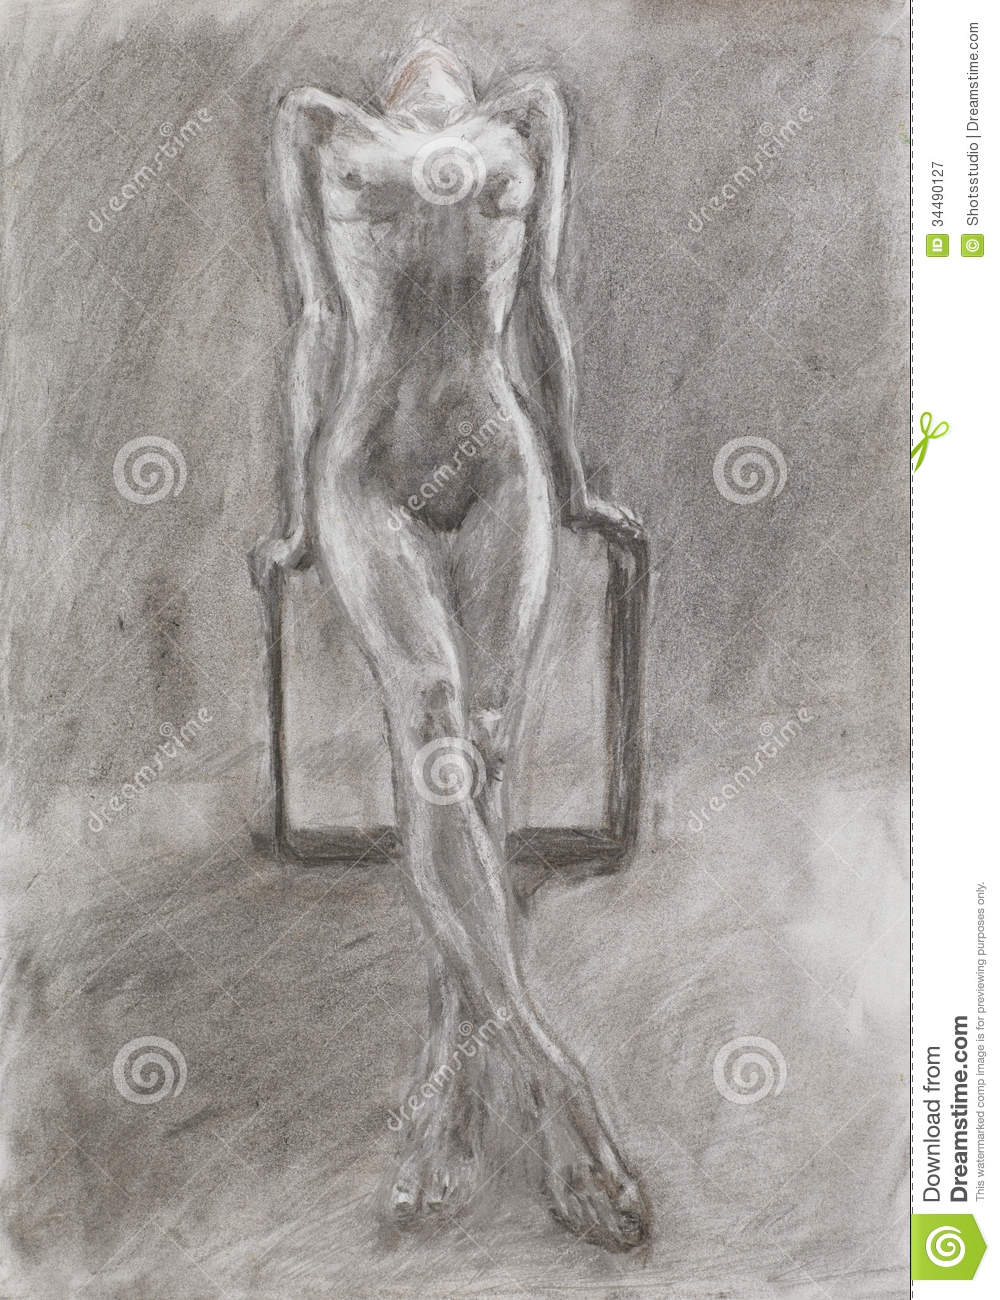 Hand drawn pencil drawing of beautiful unrecognizable naked woman